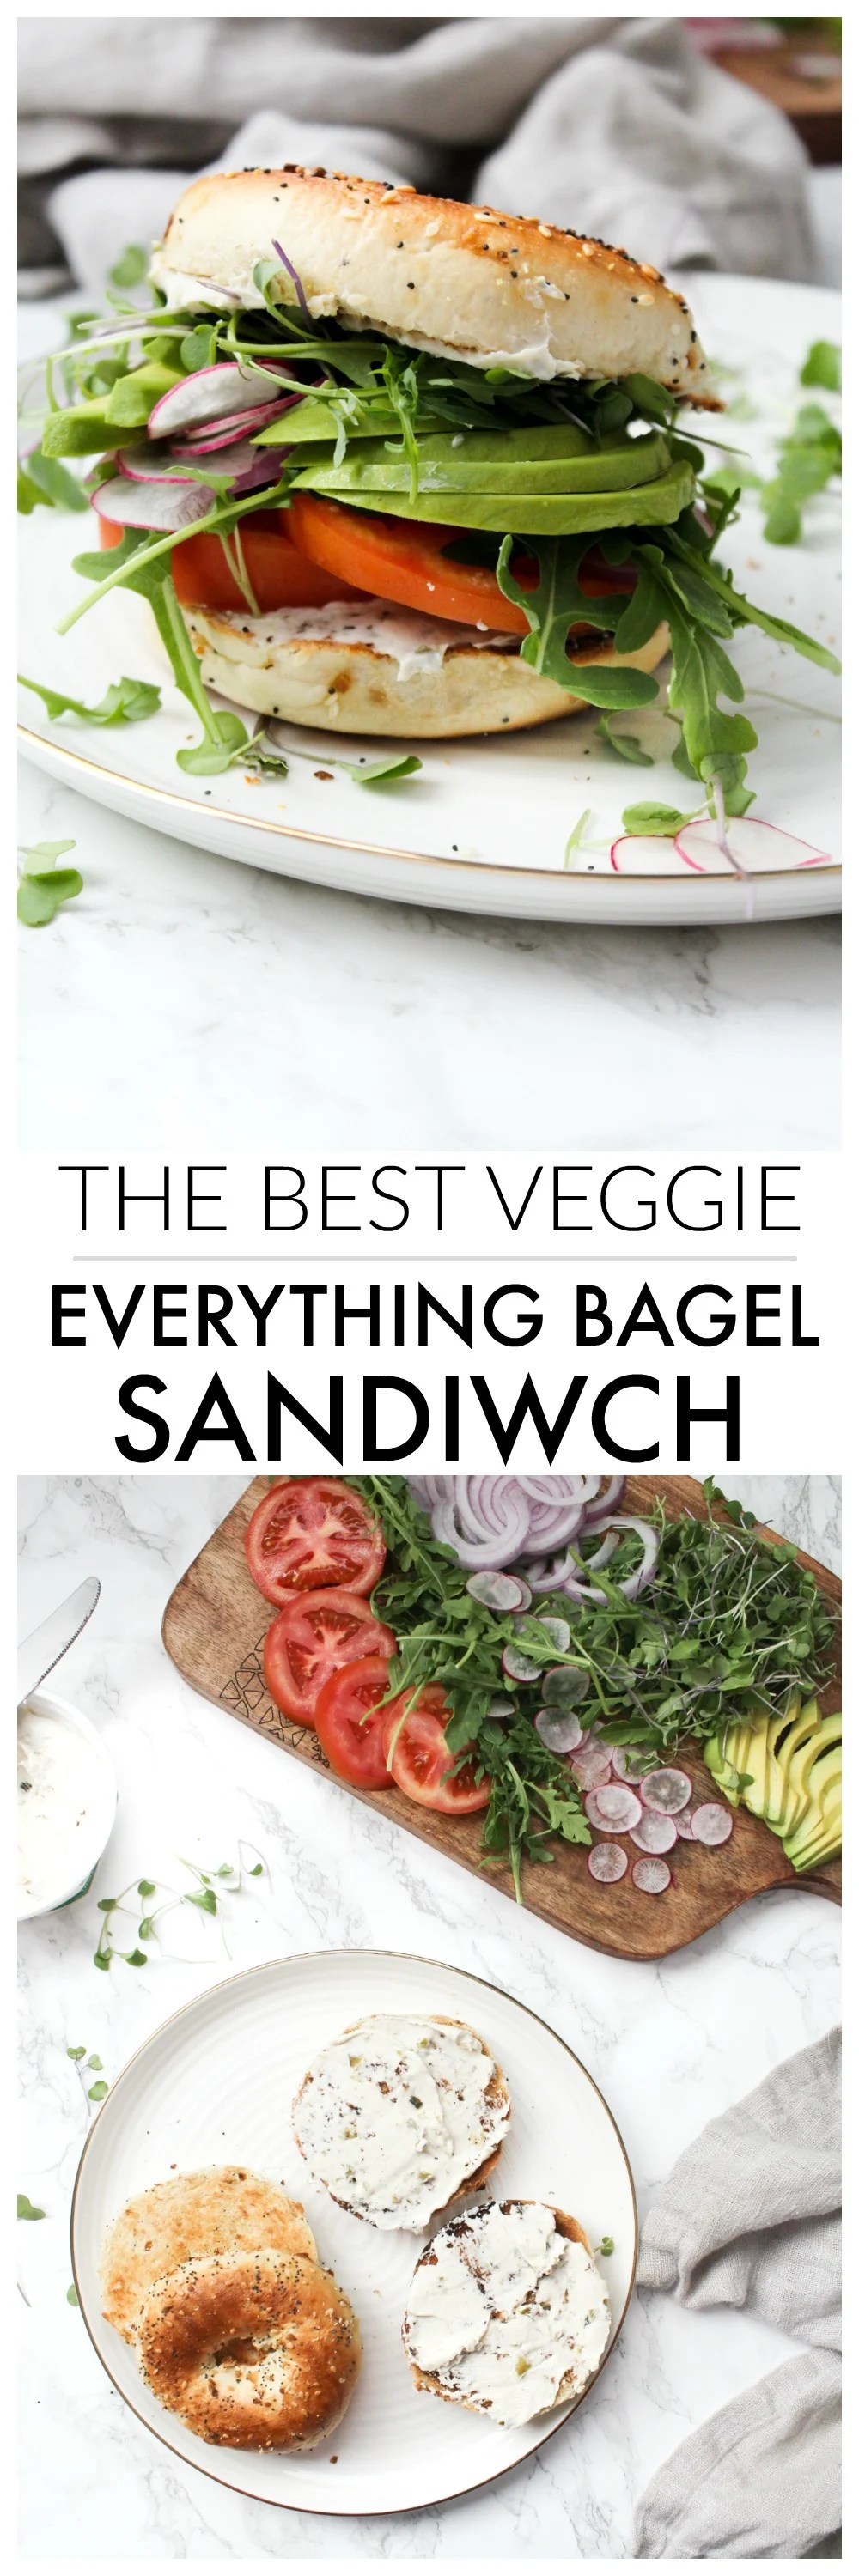 The Best Veggie Everything Bagel Sandwich - a toast bagel is loaded up with vegan cream cheese, avocado and a whole lotta veggies. Perfect make ahead lunch | ThisSavoryVegan.com #thissavoryvegan #brunch #sandwich